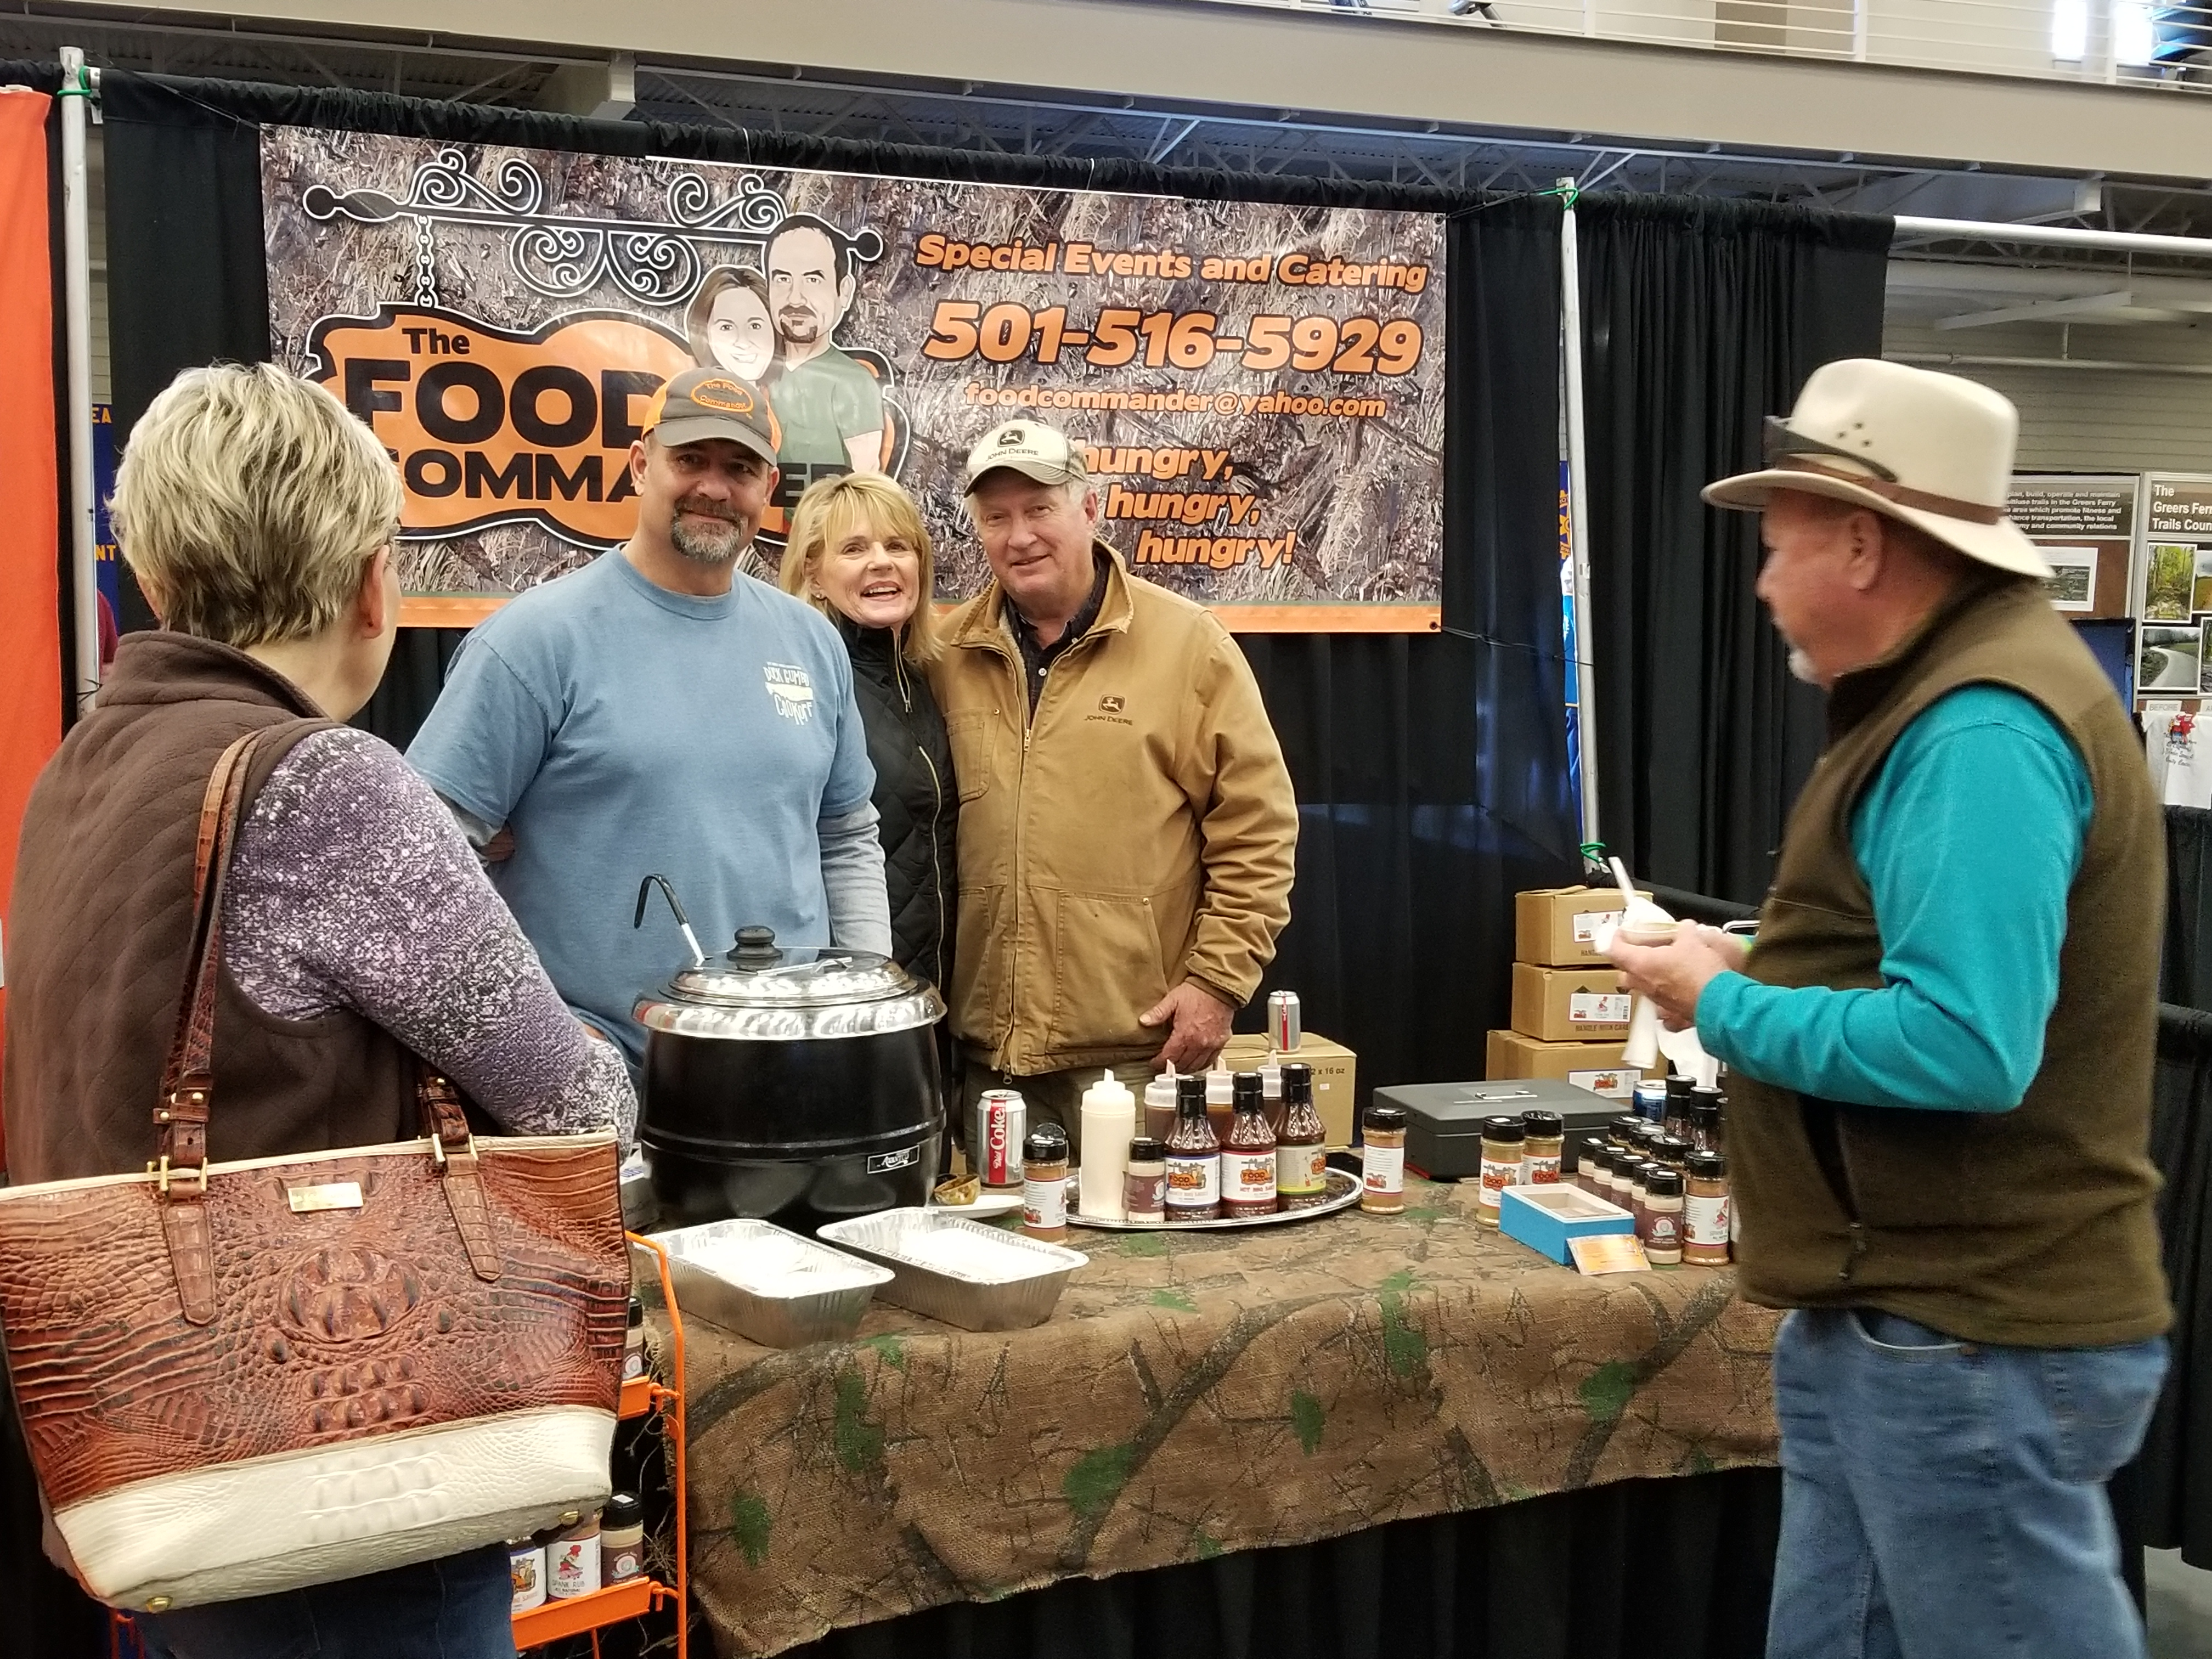 New this year was The Food Commander providing lots of Food Samples.